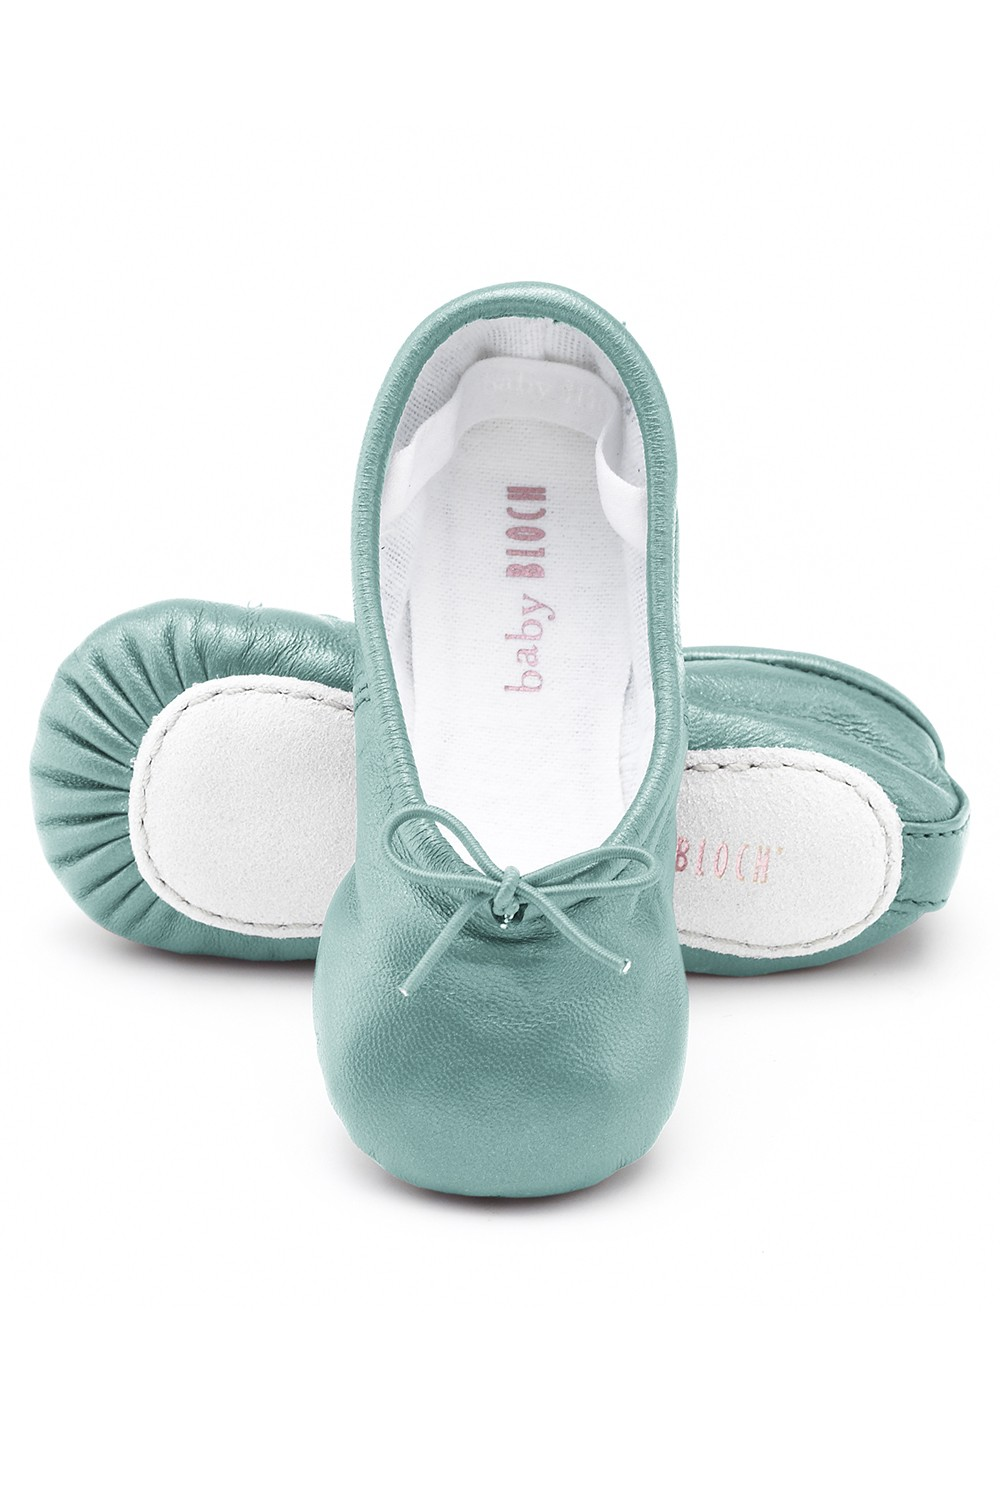 Baby Ballerina Babies Fashion Shoes